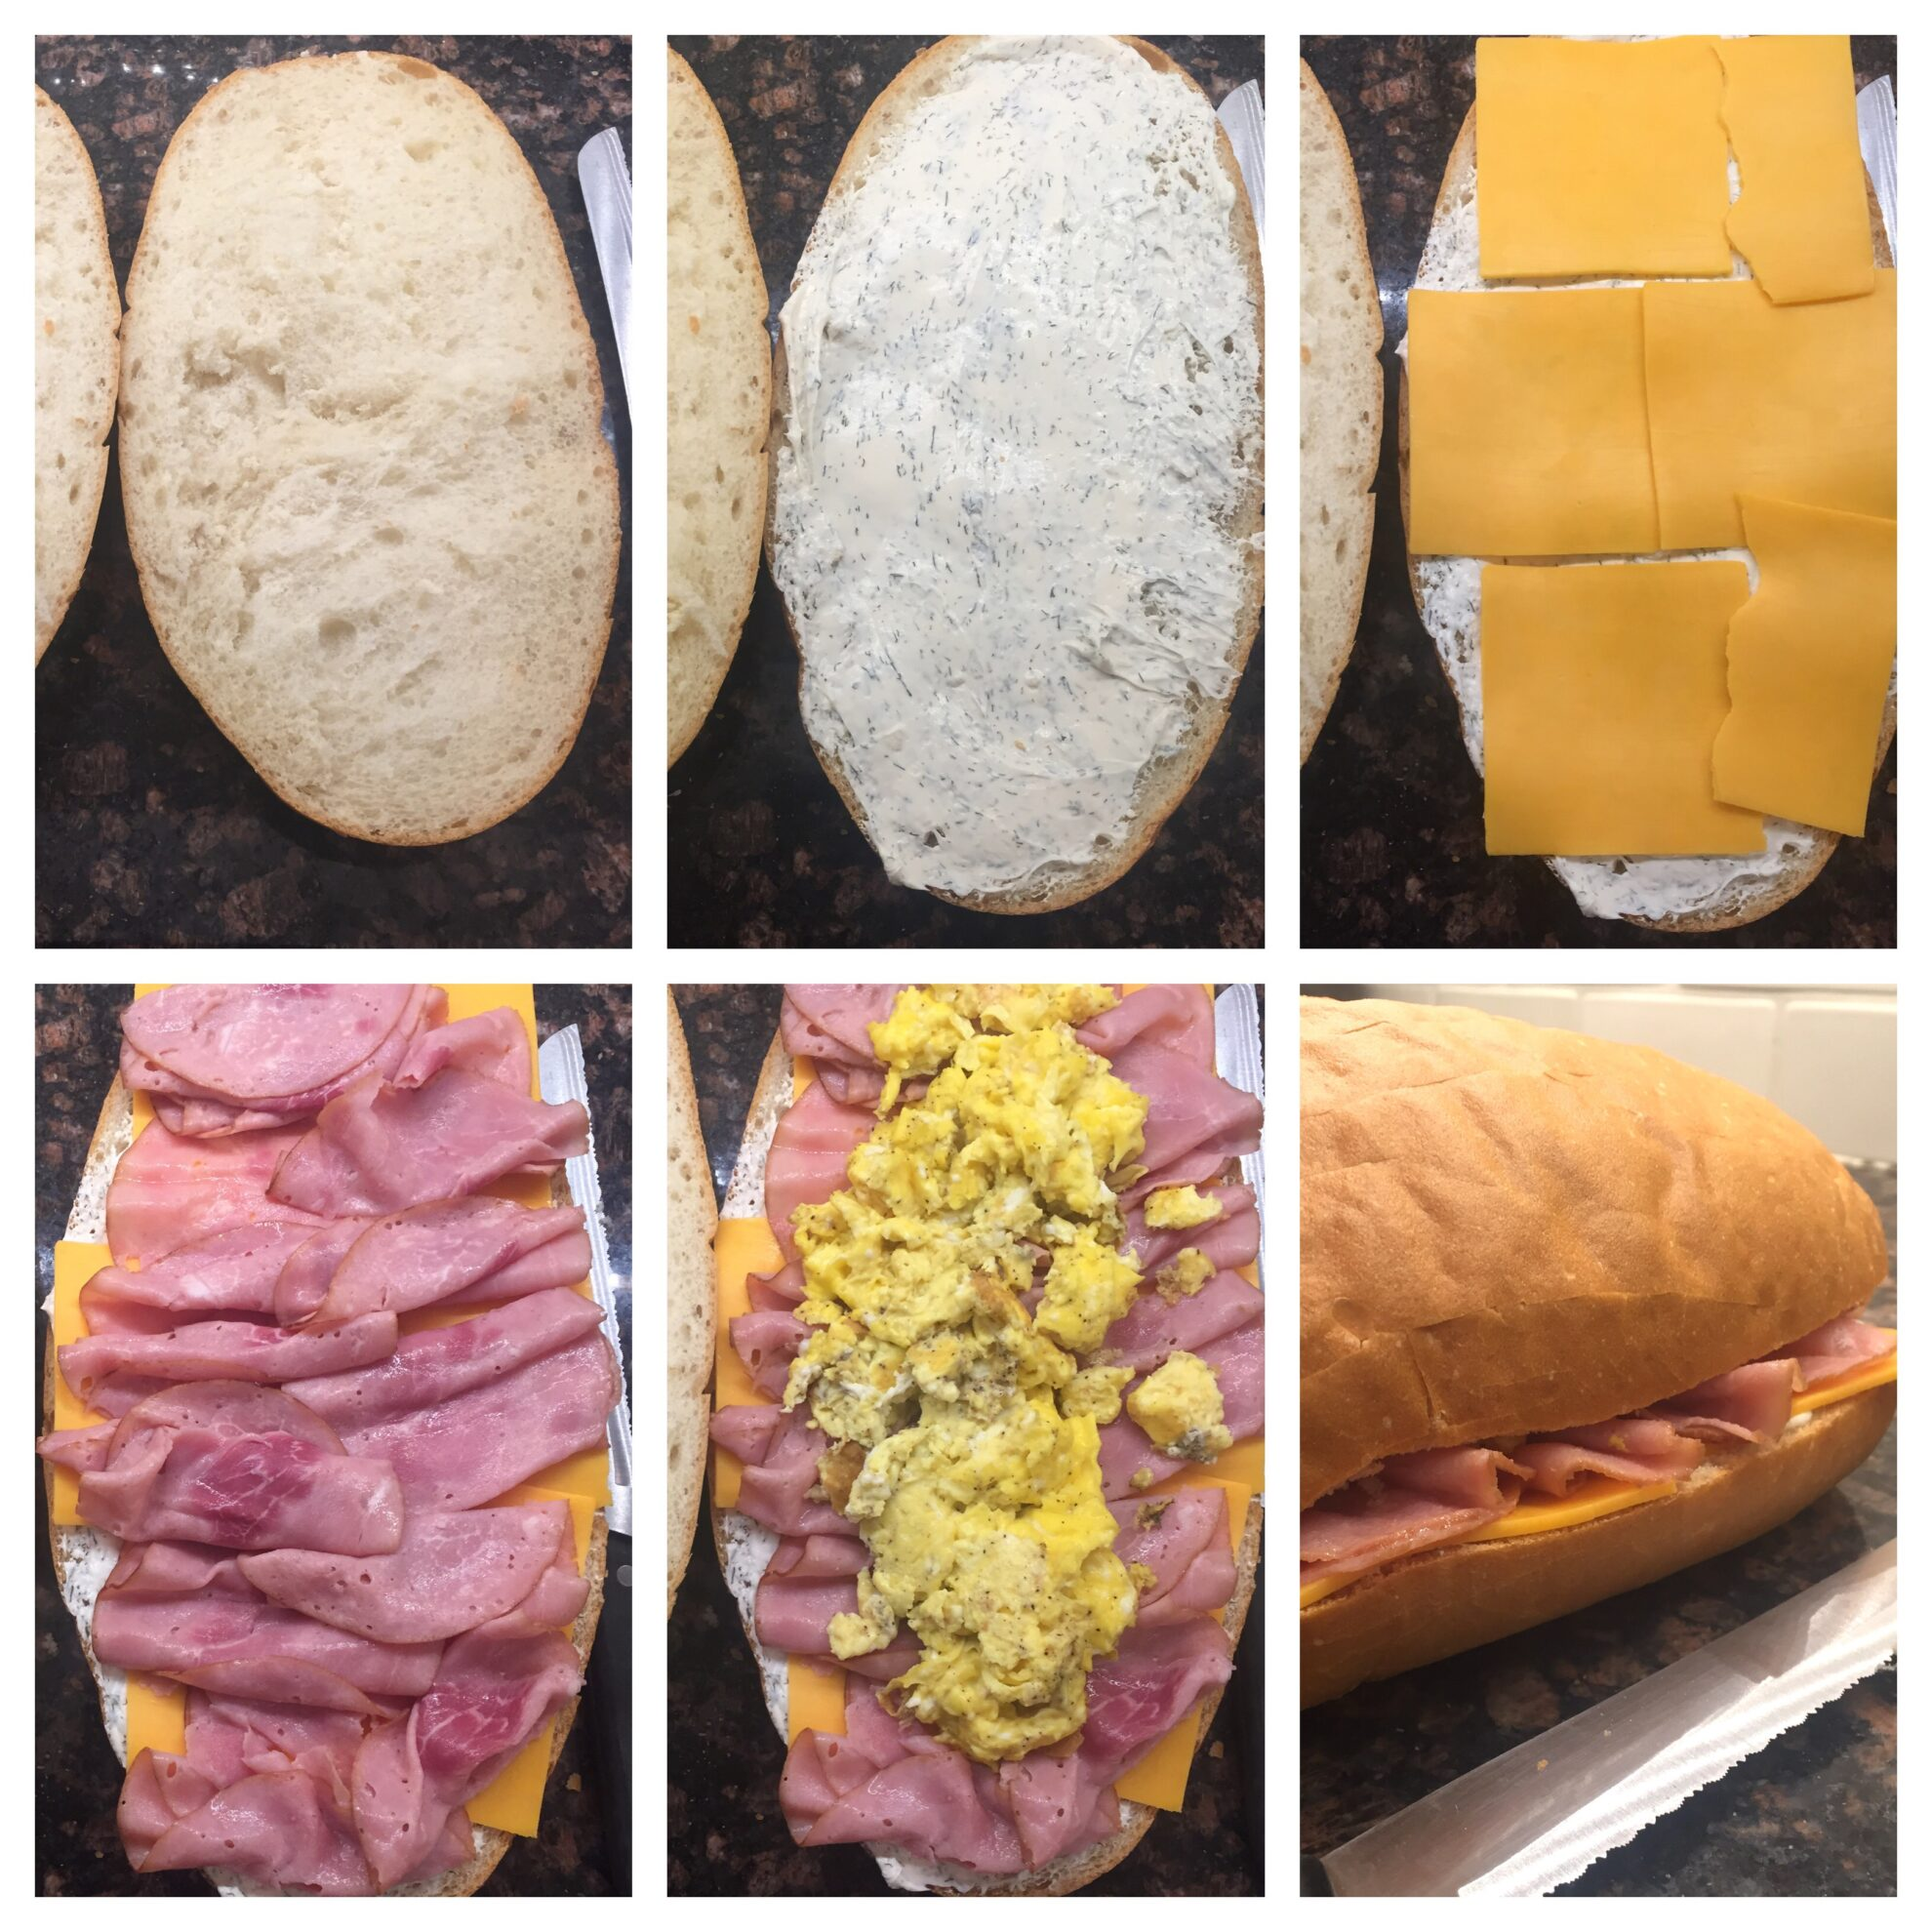 stuffed breakfast french bread